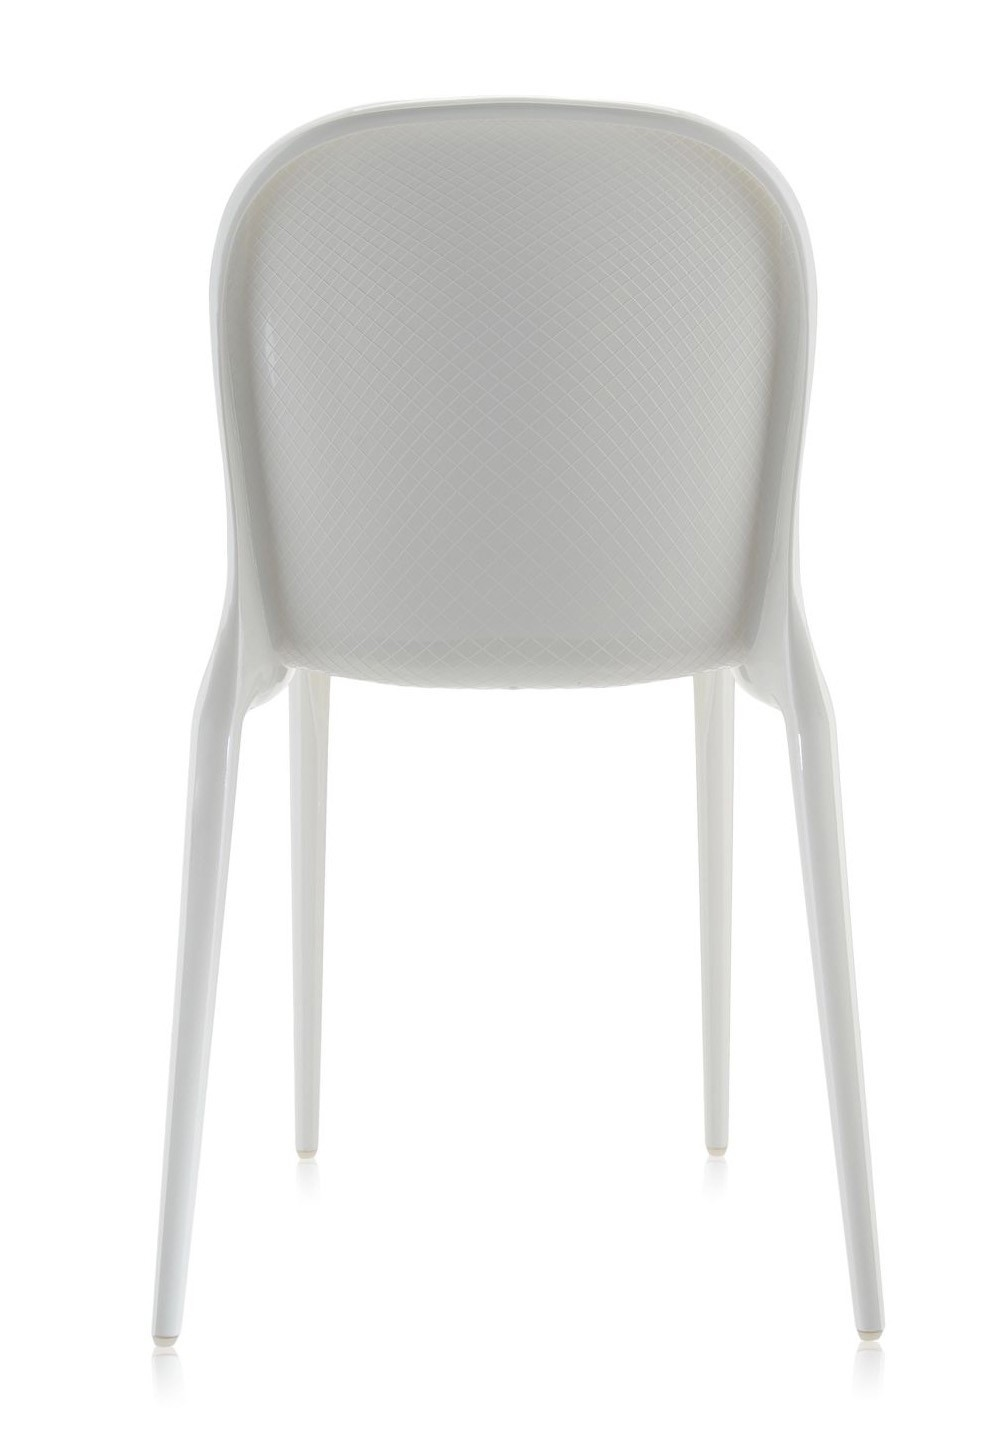 1  sc 1 st  Modern Planet & Kartell Thalya Mat Chair (Priced Each Sold in Sets of 2) - Modern ...